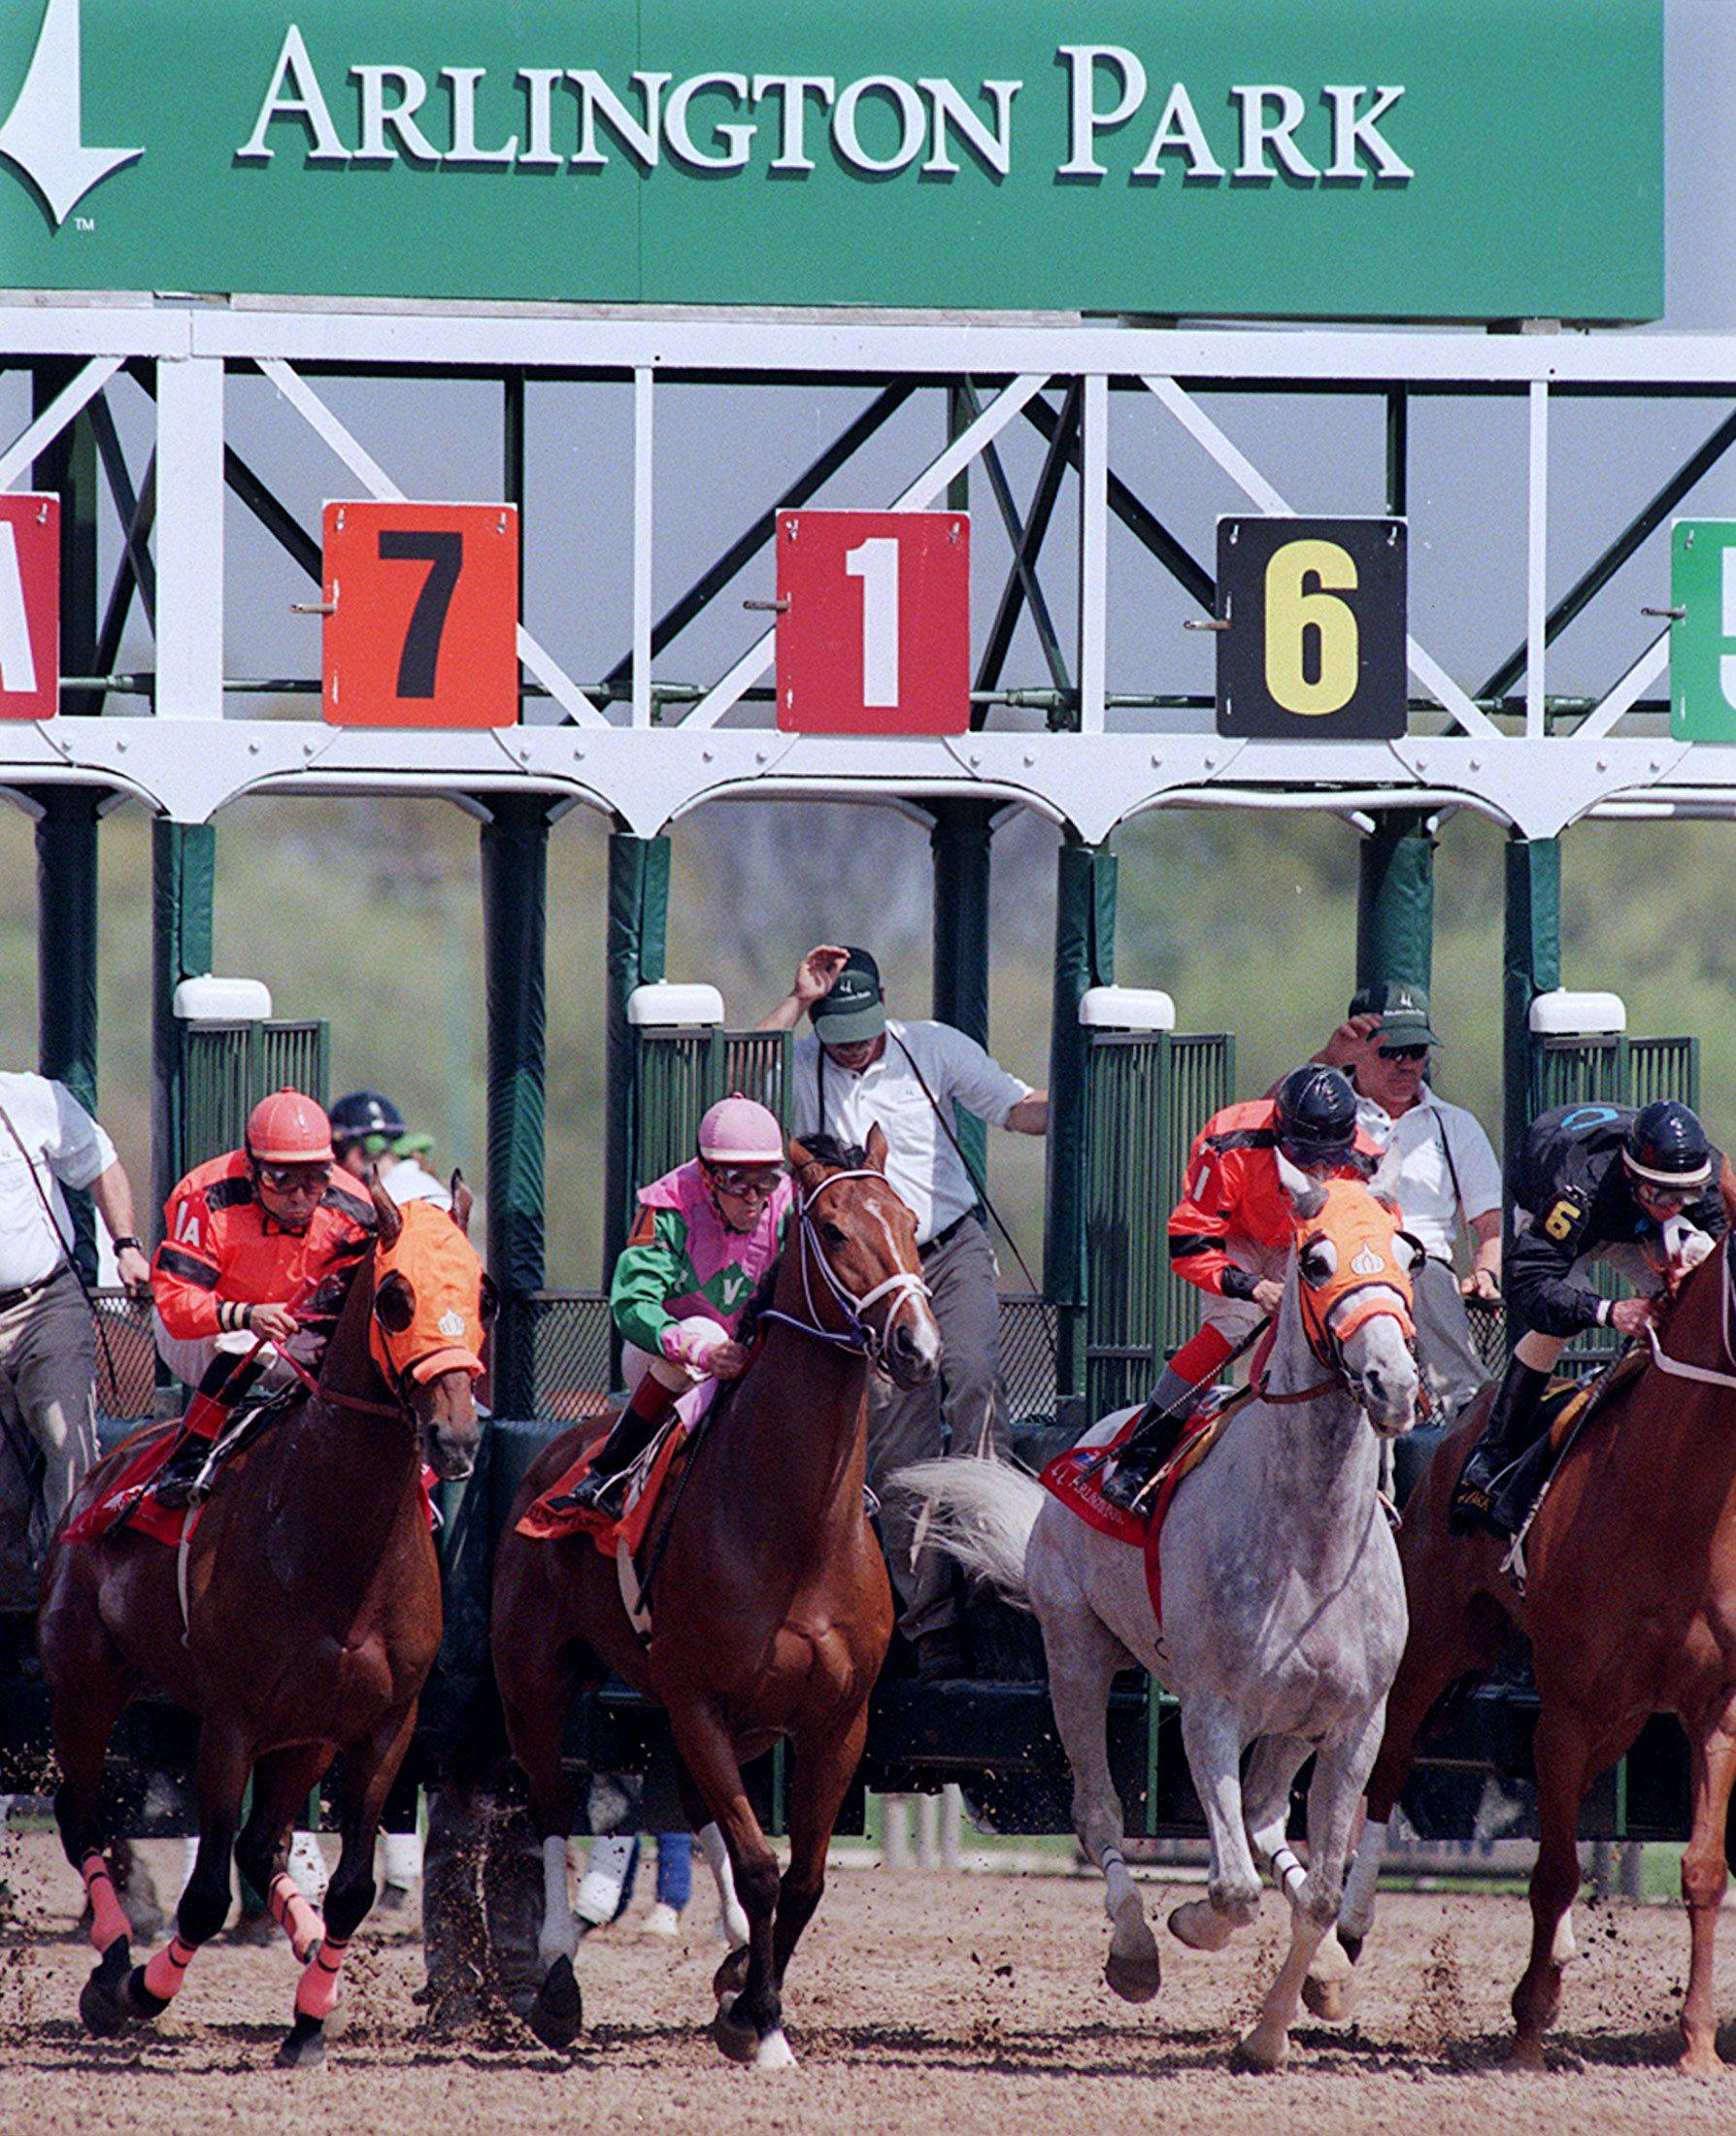 Illinois' unpaid bills include more than $203,000 owed to Arlington Park. The state owes through an incentive program for horse owners who enter Illinois born-and-raised thoroughbreds in races at the track.